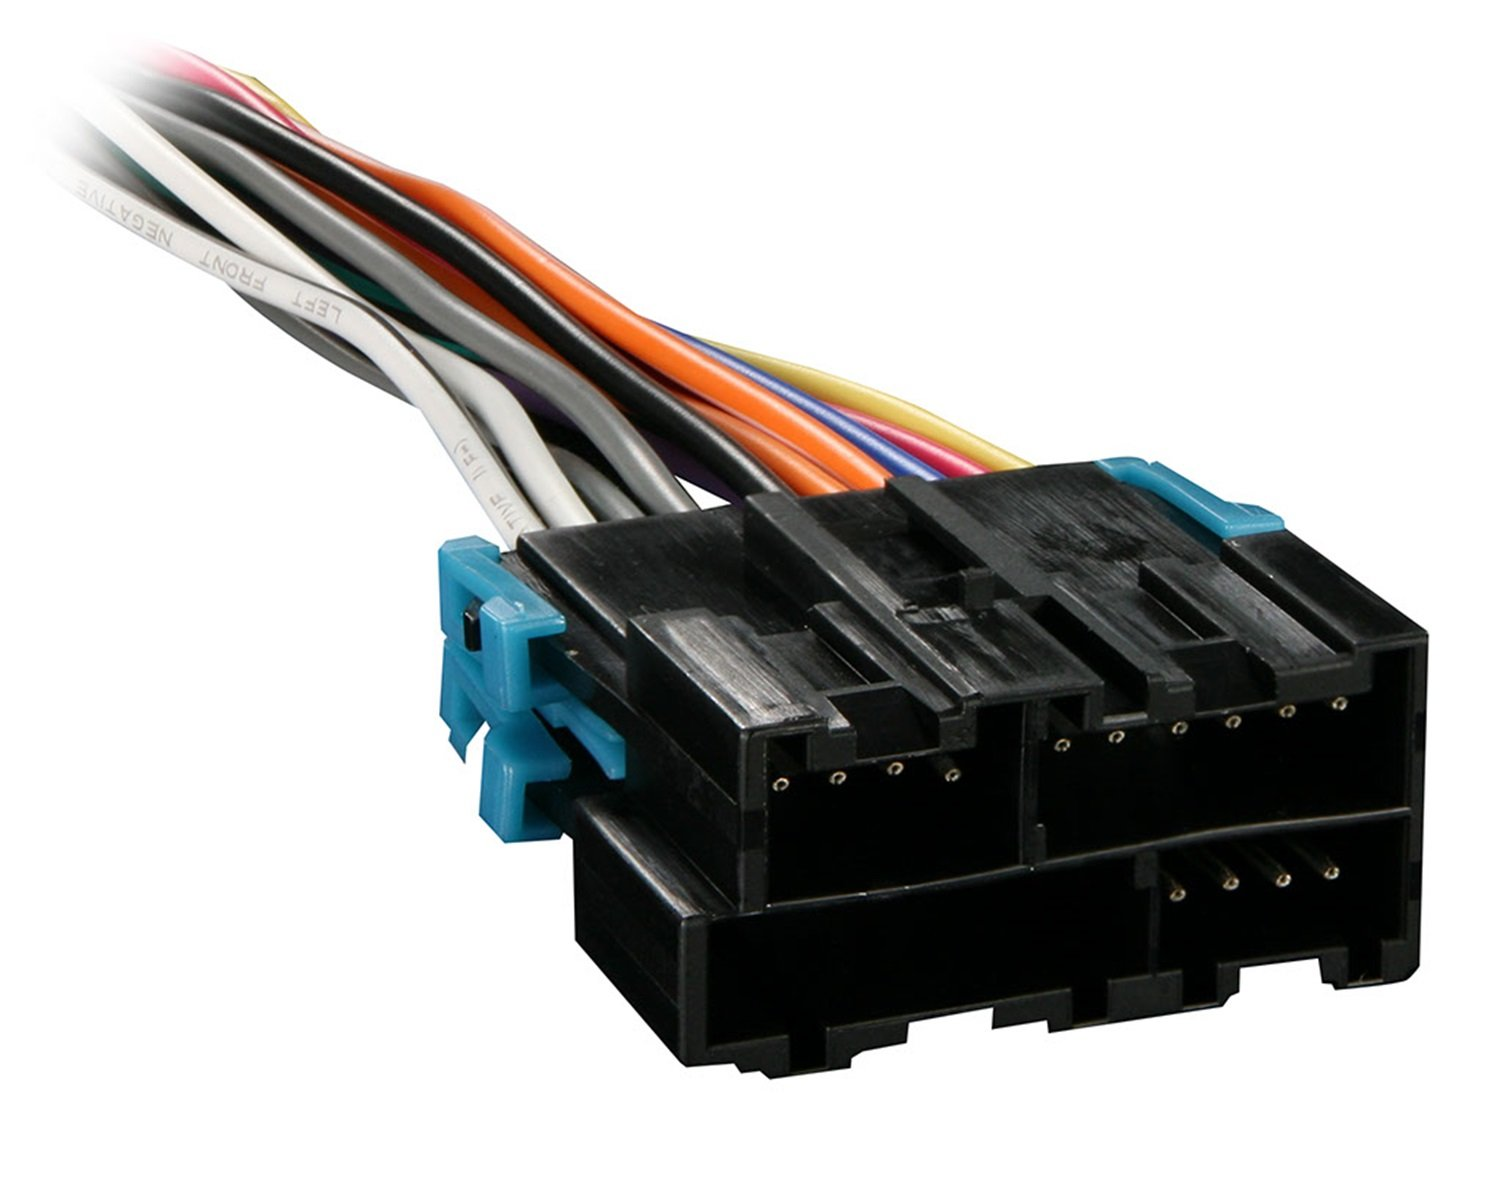 61 CwjZt1hL._SL1500_ radio wiring harnesses amazon com car audio wiring harness at nearapp.co